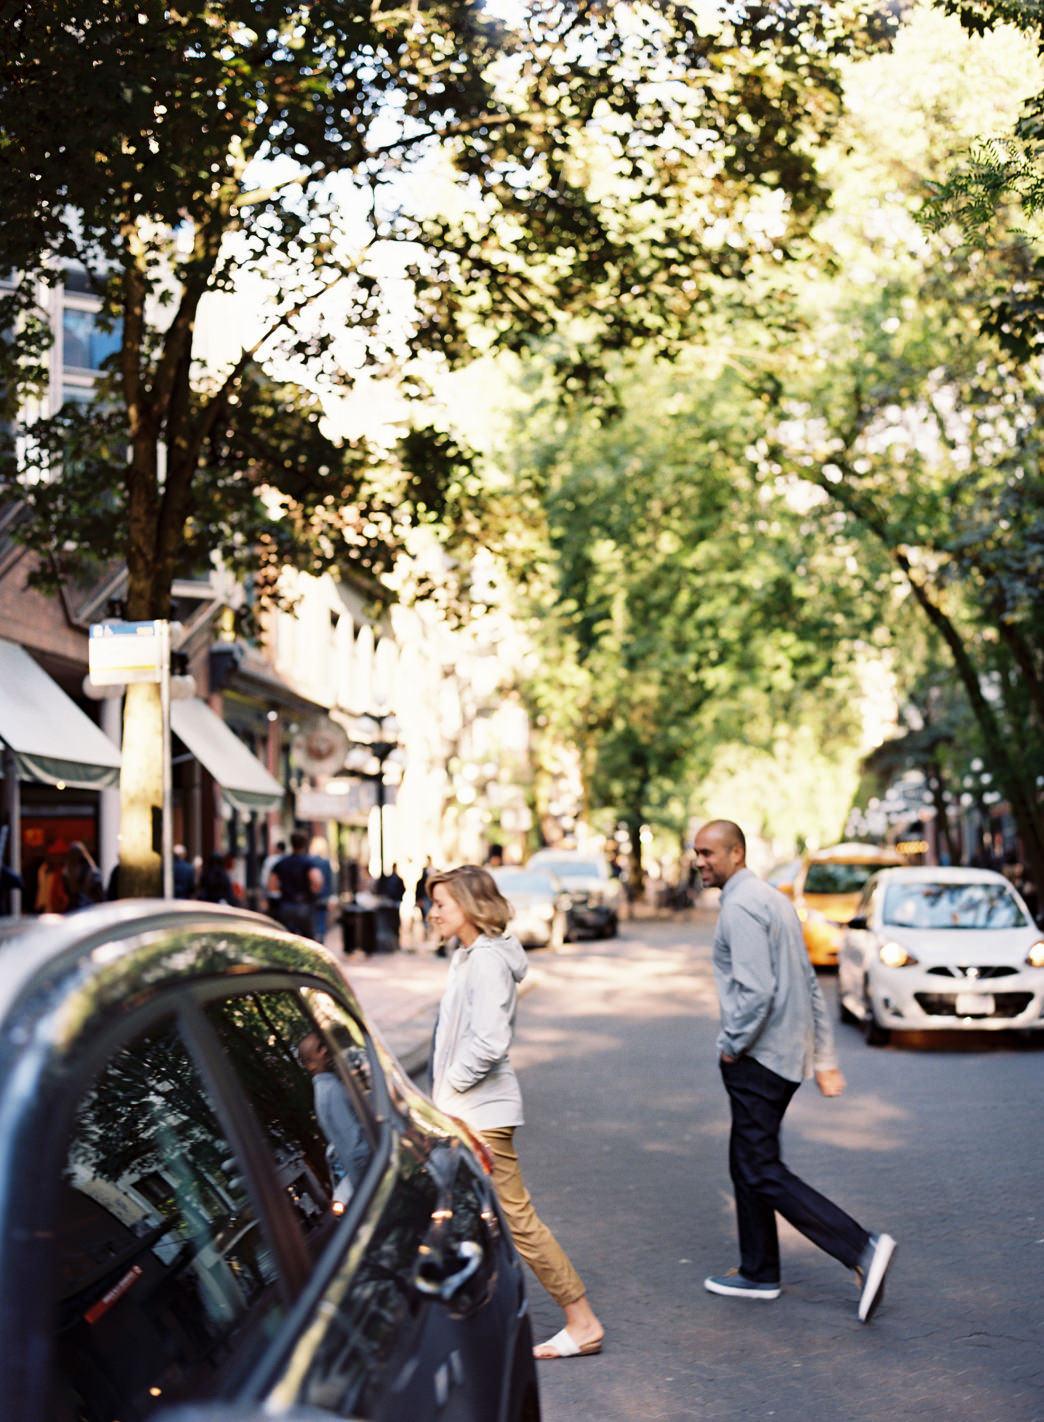 The historic Gastown District offers a beautiful setting for a photo shoot or just hanging out.